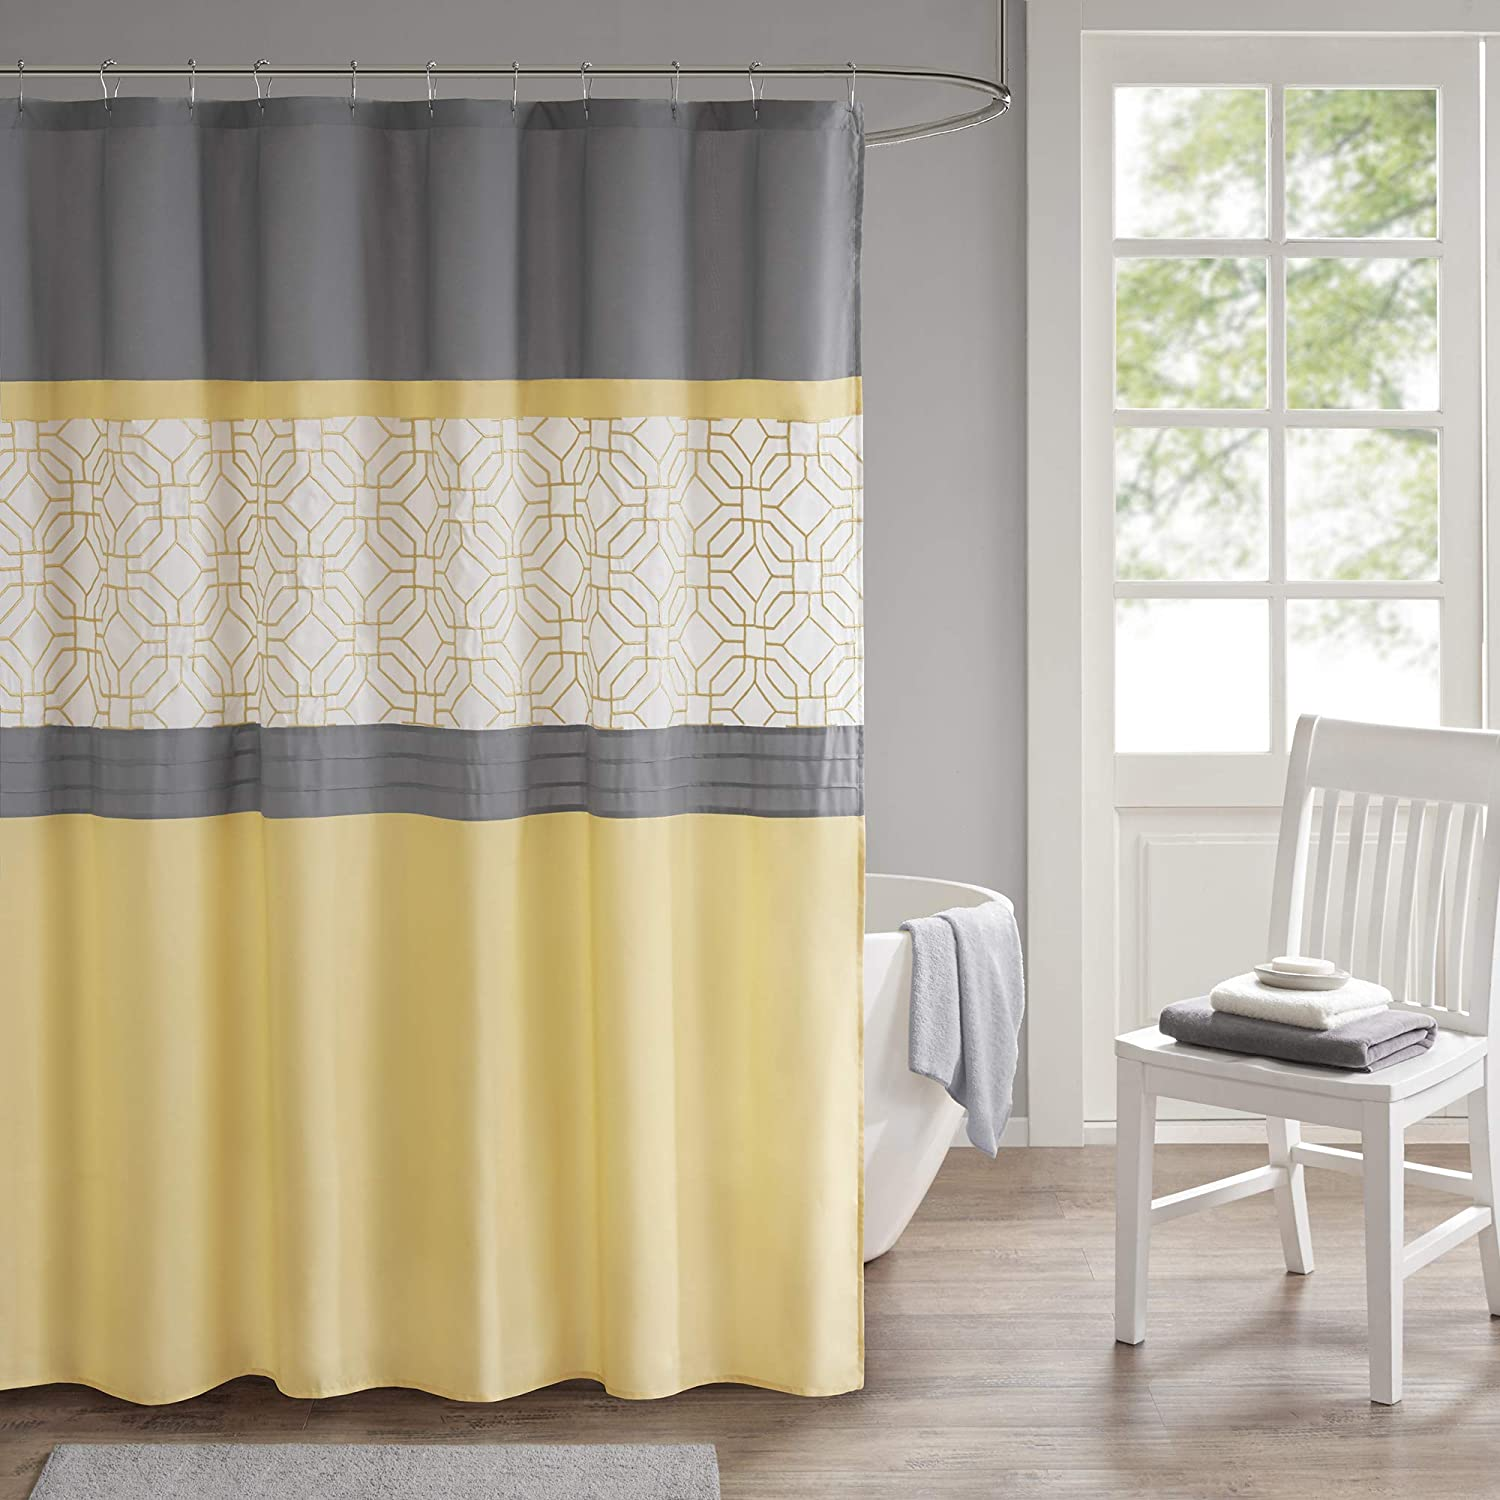 510 DESIGN Donnell Embroidered and Pieced Shower Curtain with Liner Yellow/Gray 72x72